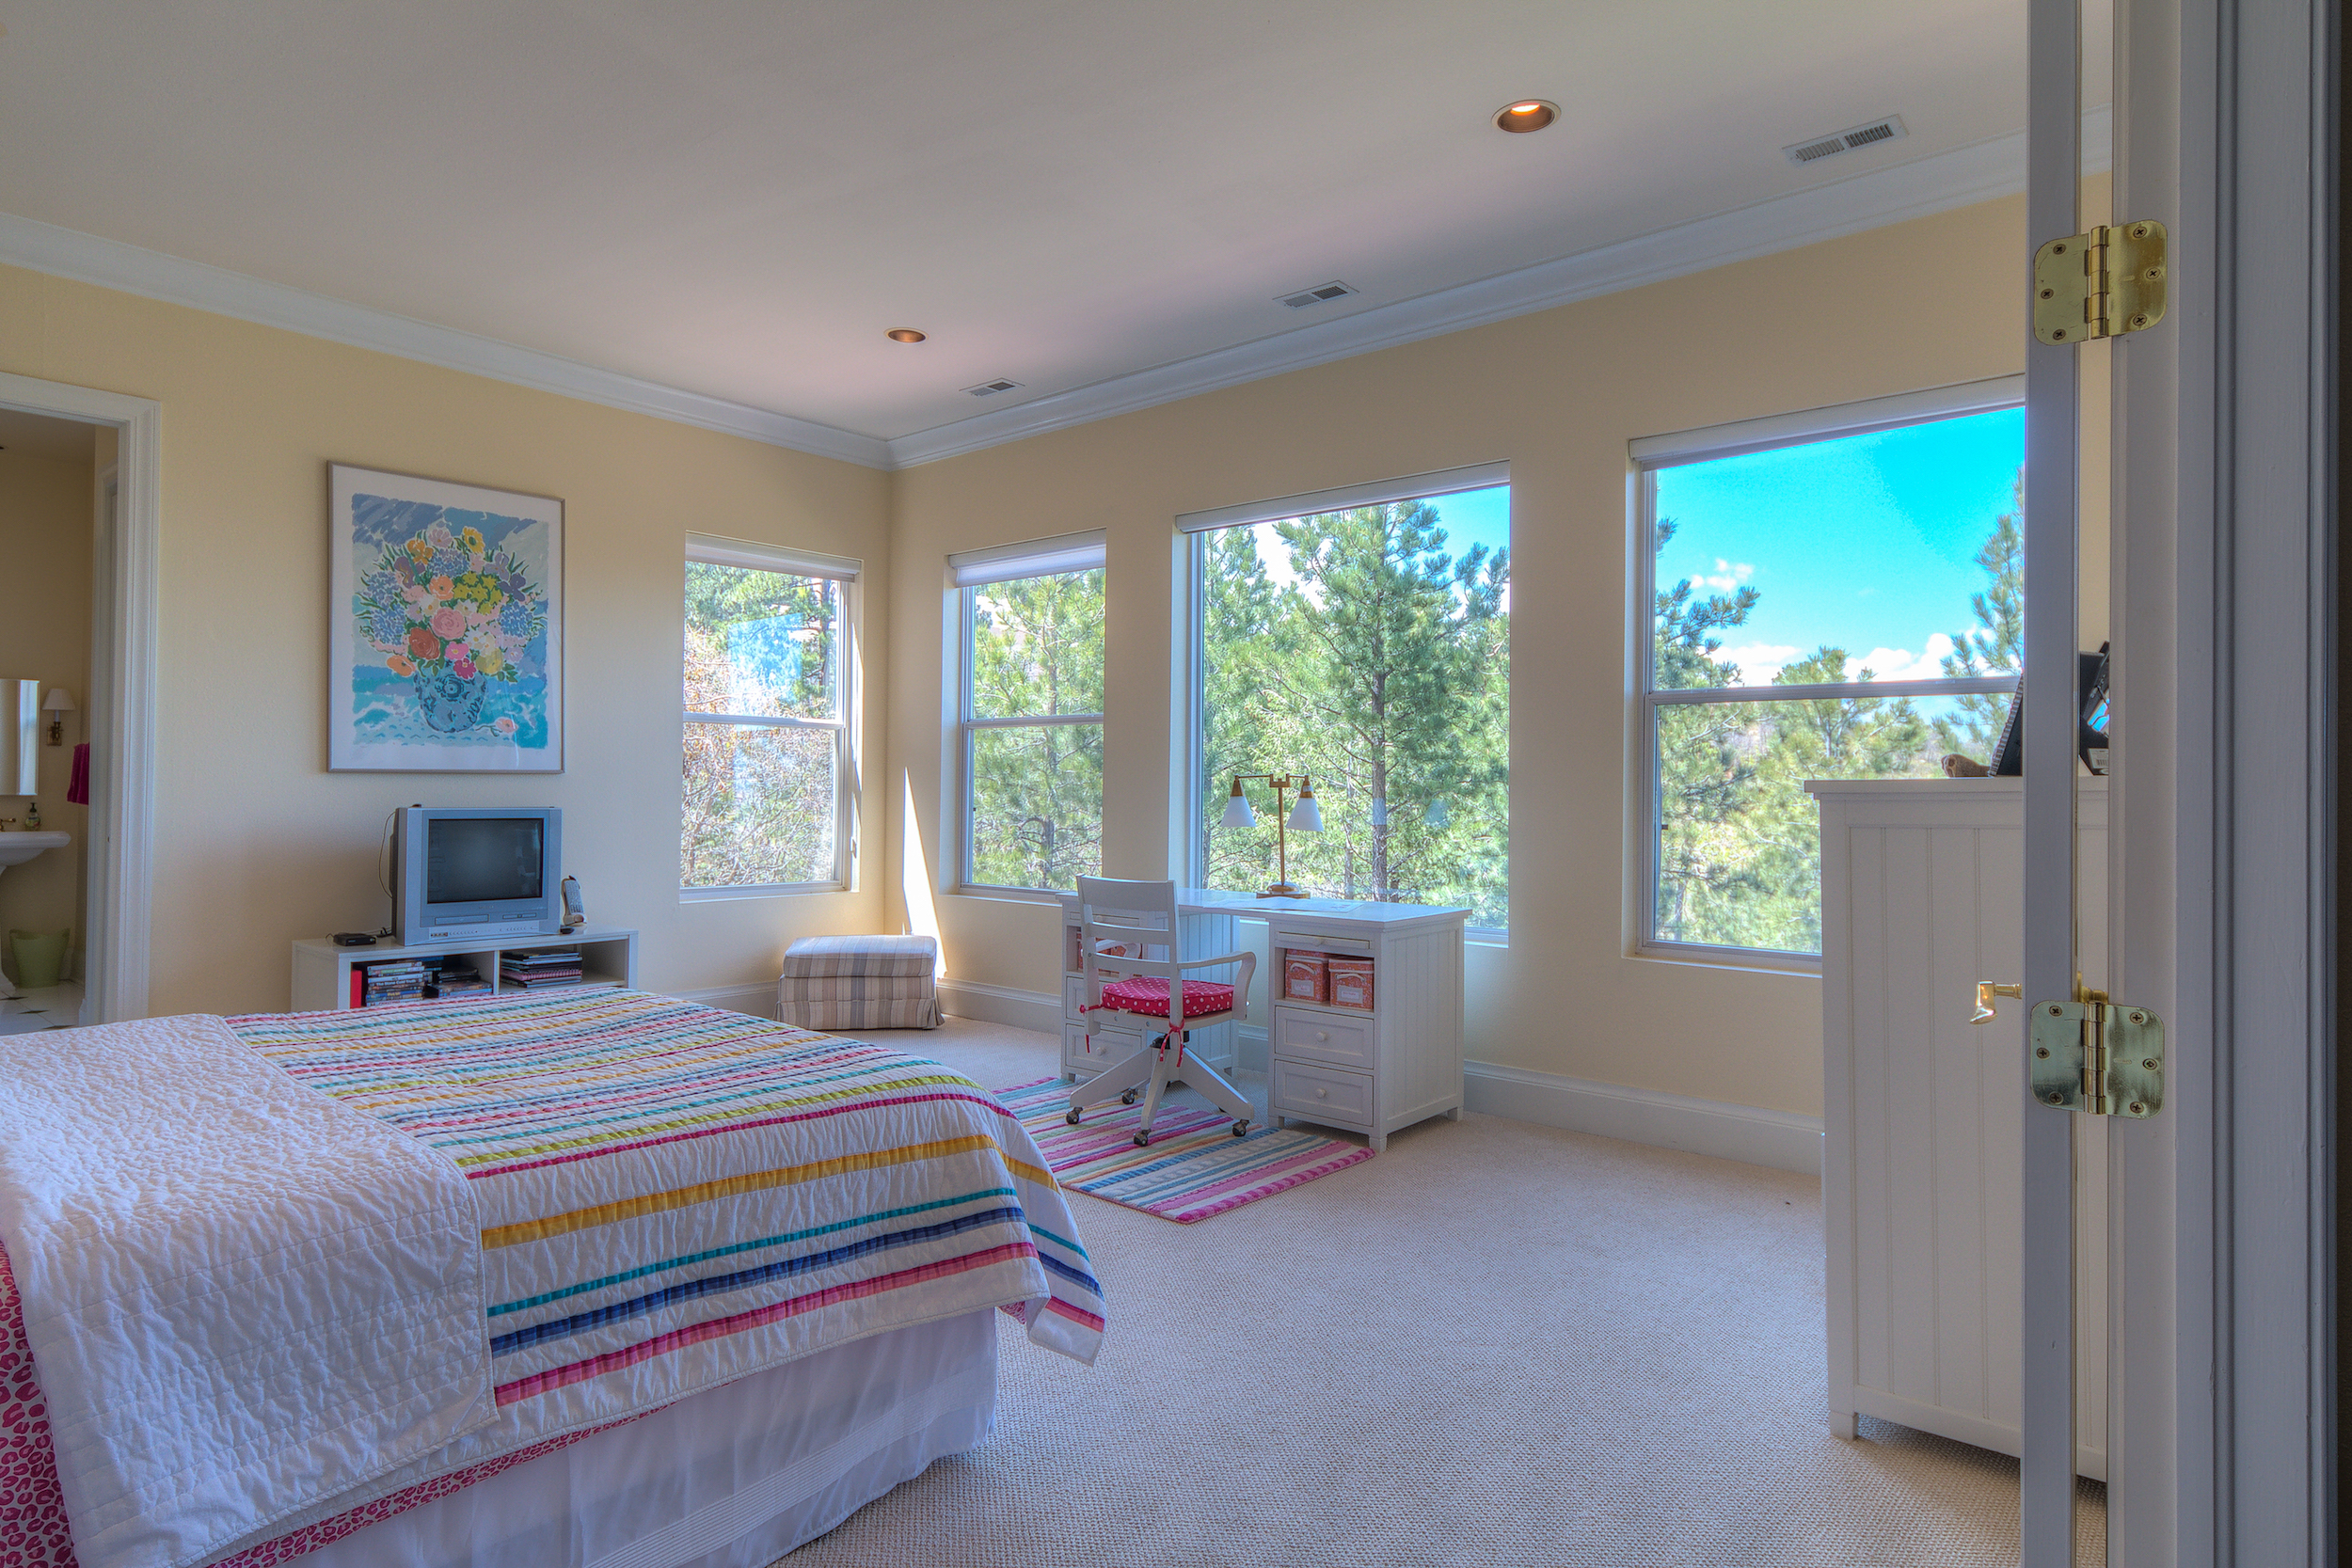 19 - Guest bedroom with Adjoining Bath.jpg